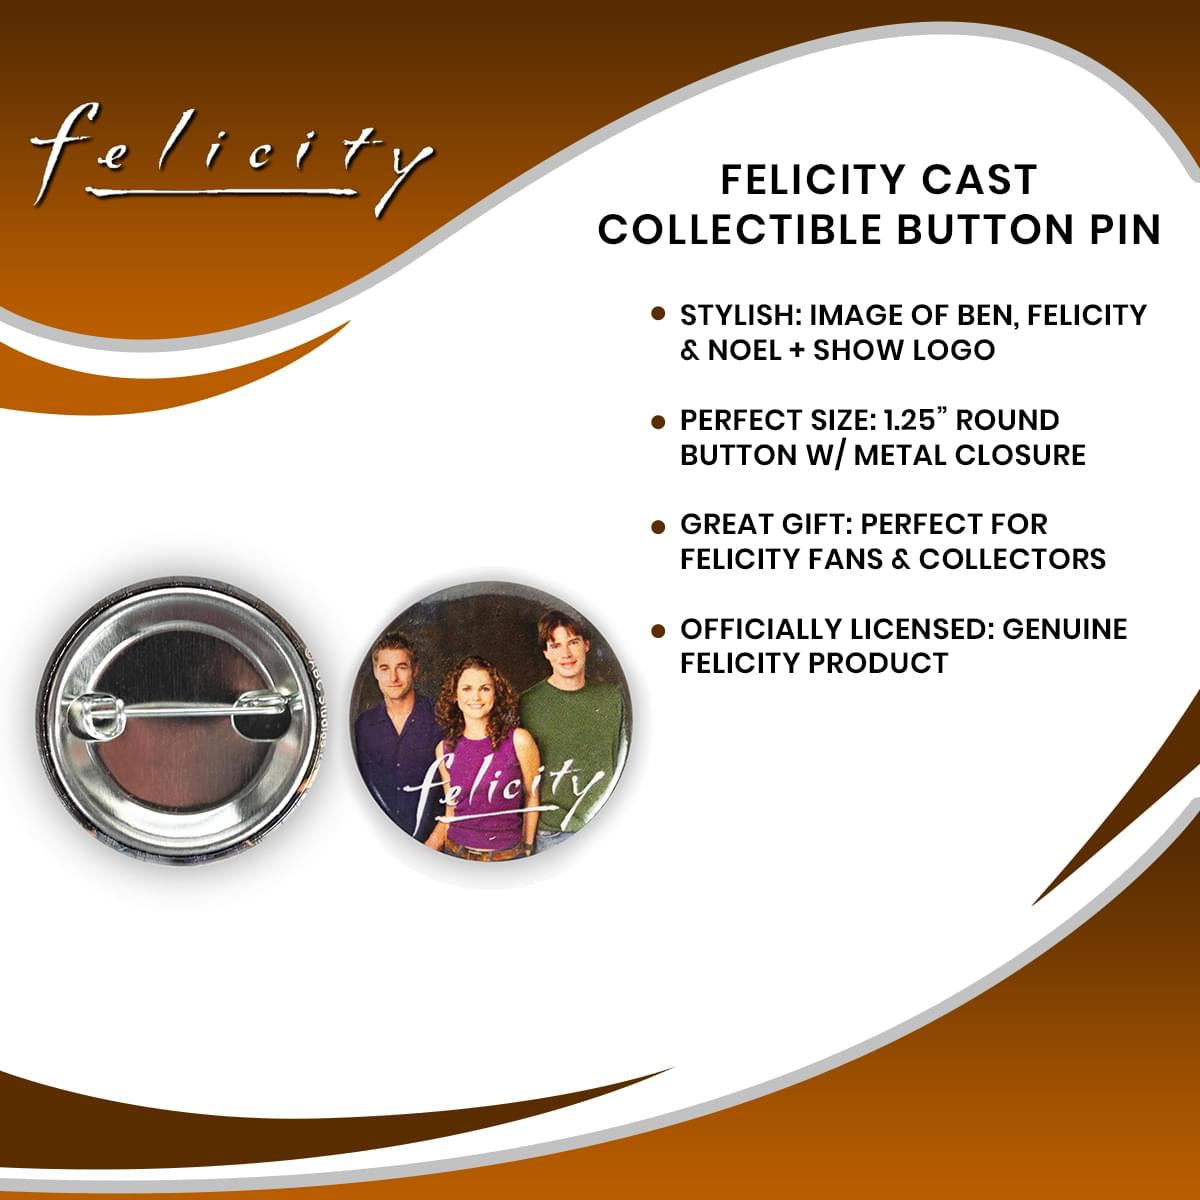 Felicity Cast Collectible Button Pin